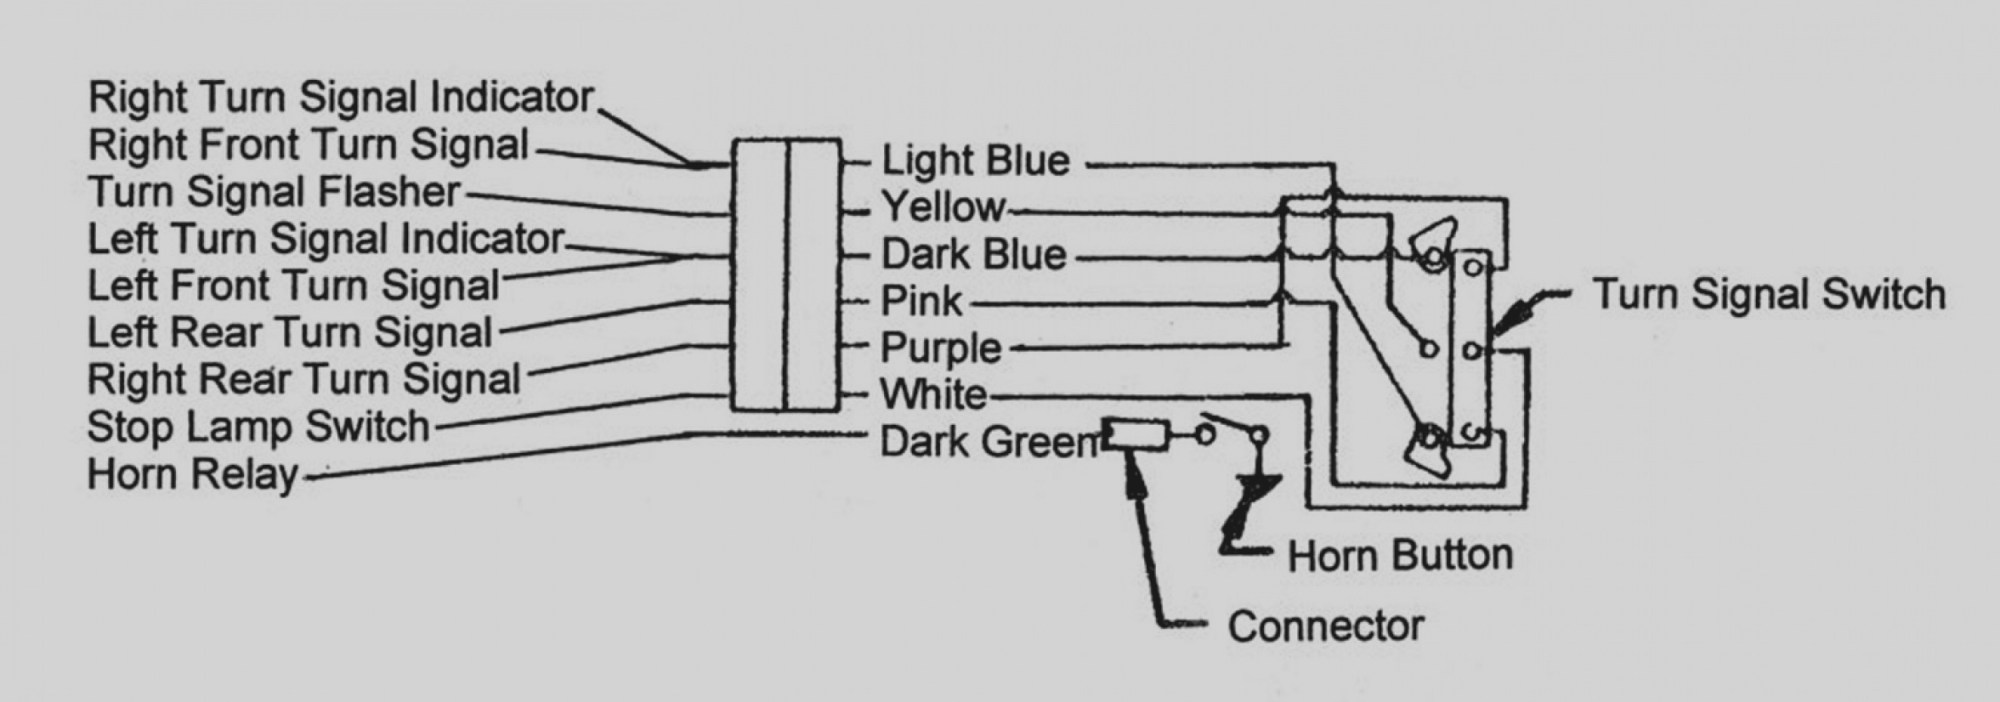 hight resolution of gm light wiring wiring diagram expertgm light wiring wiring diagram toolbox gm light switch wiring diagram